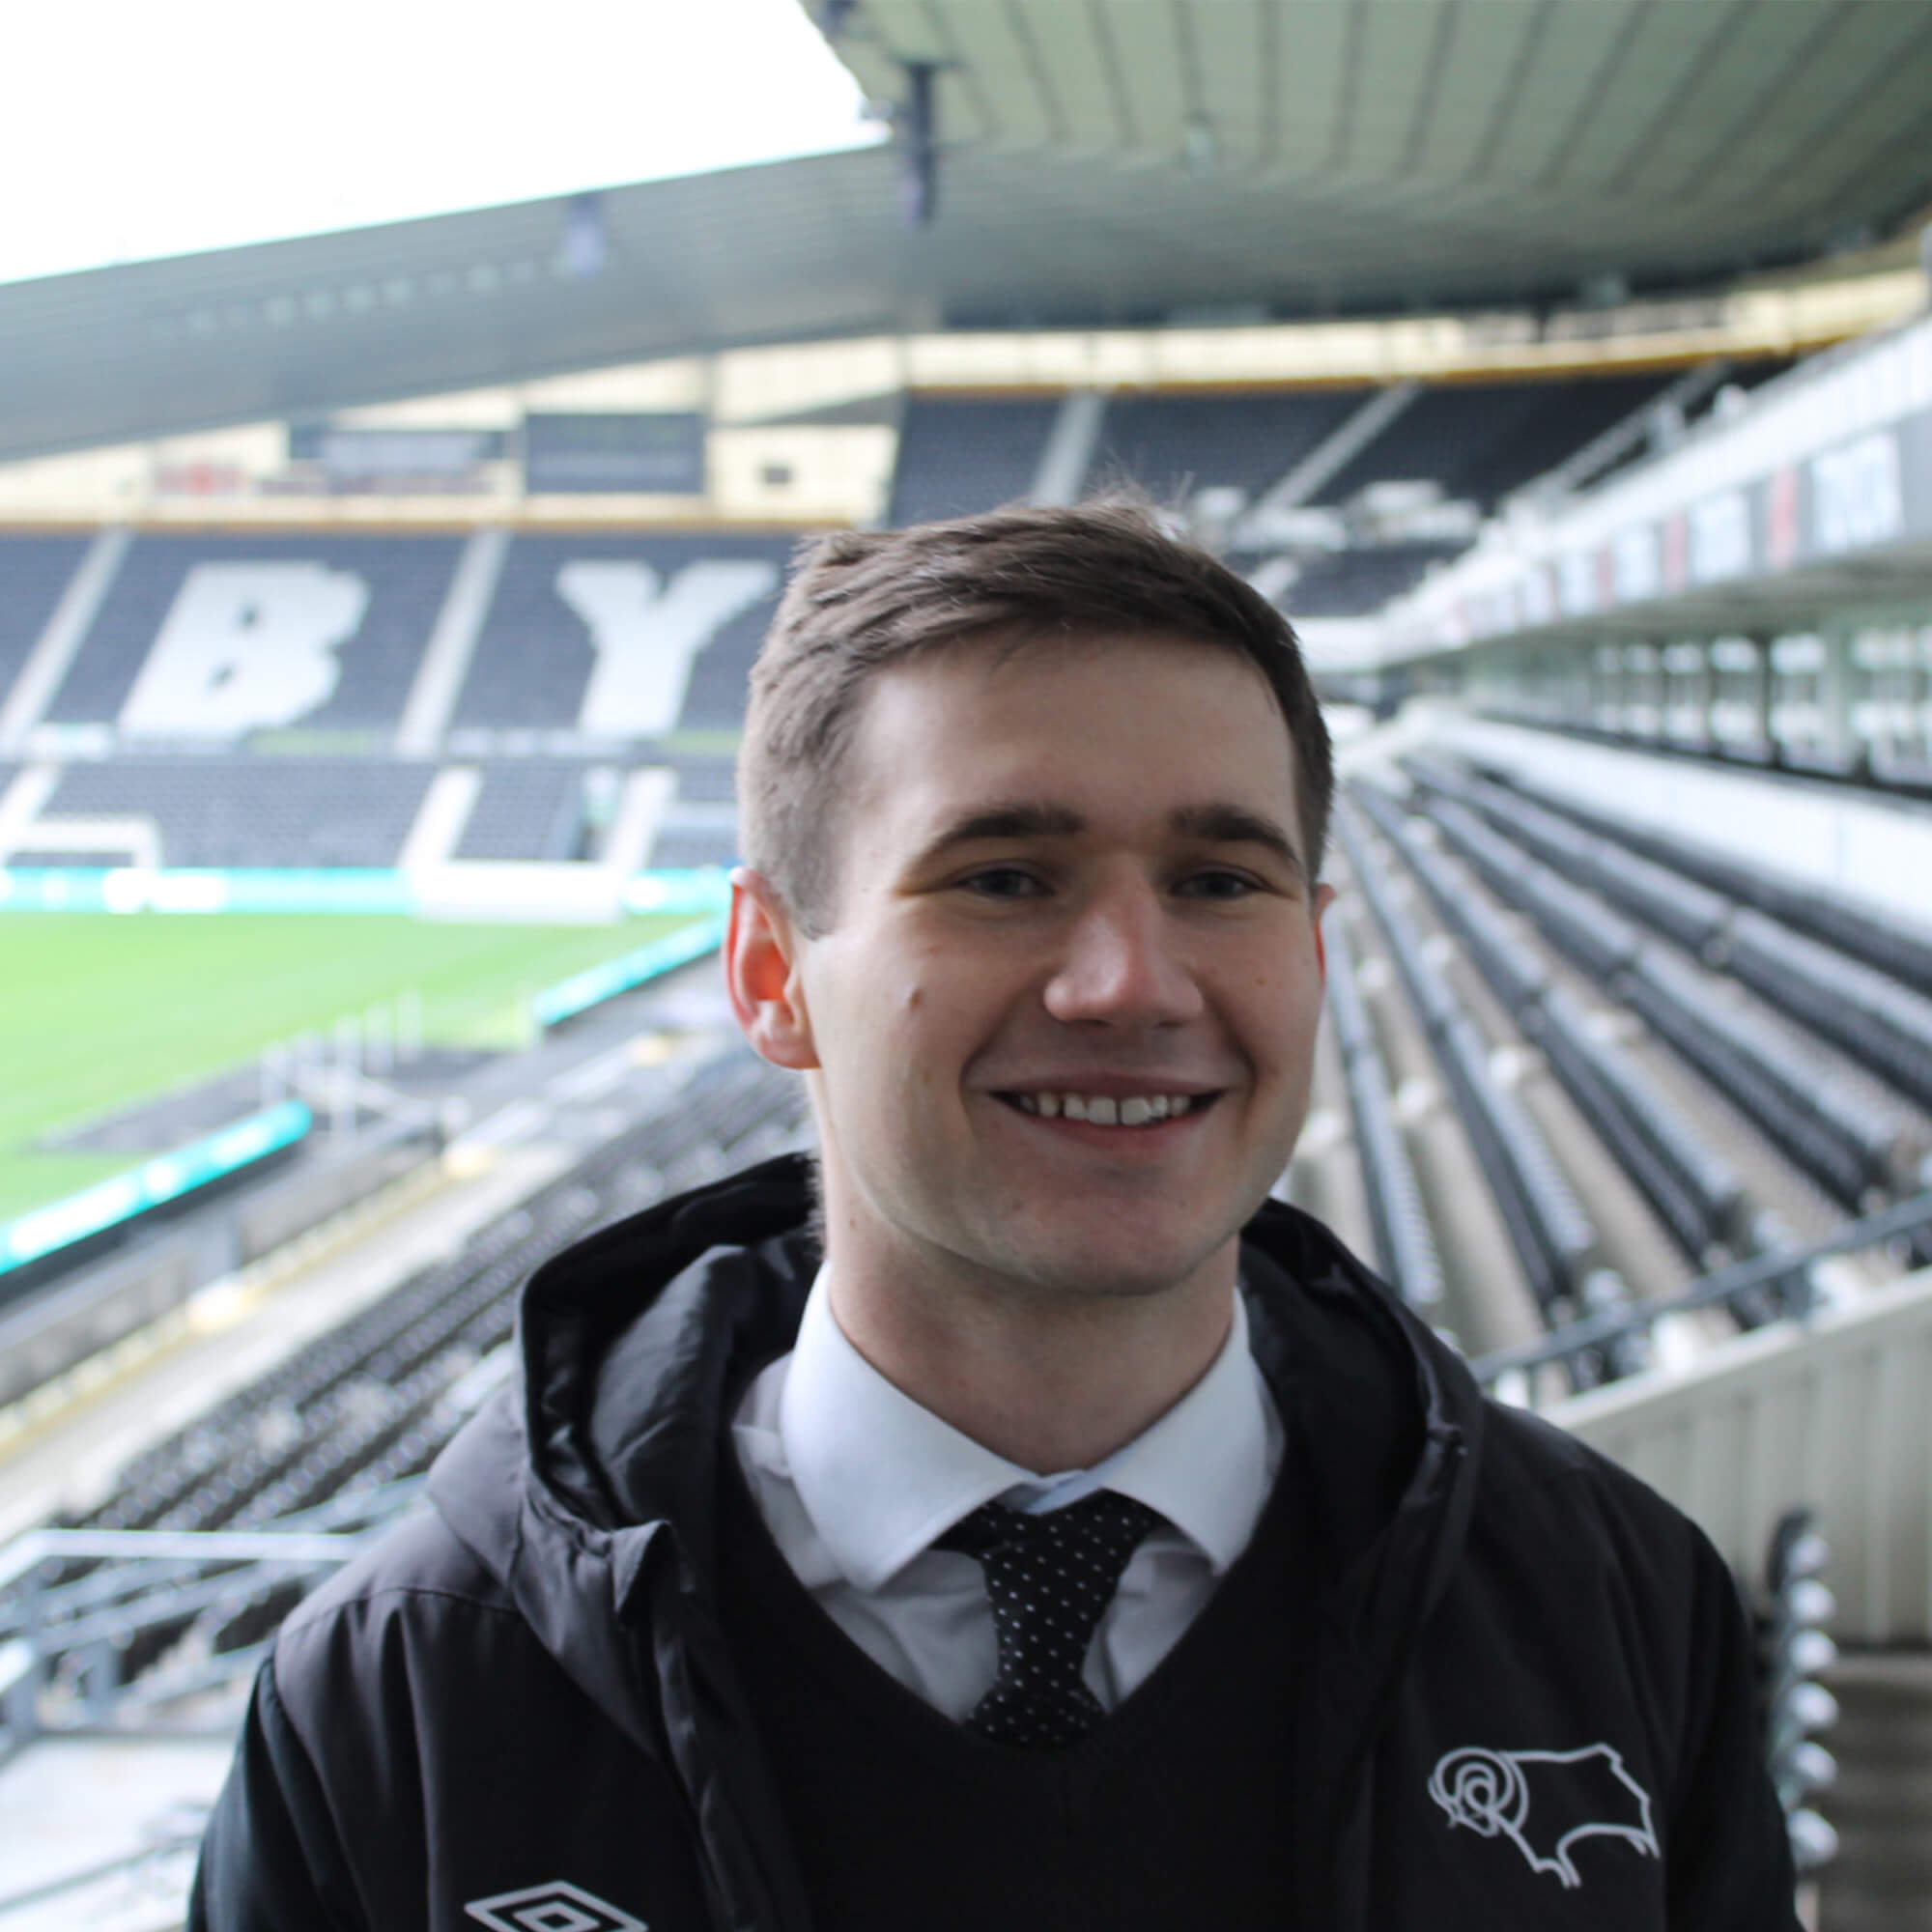 Student smiling at the Derby County Footfall Club grounds